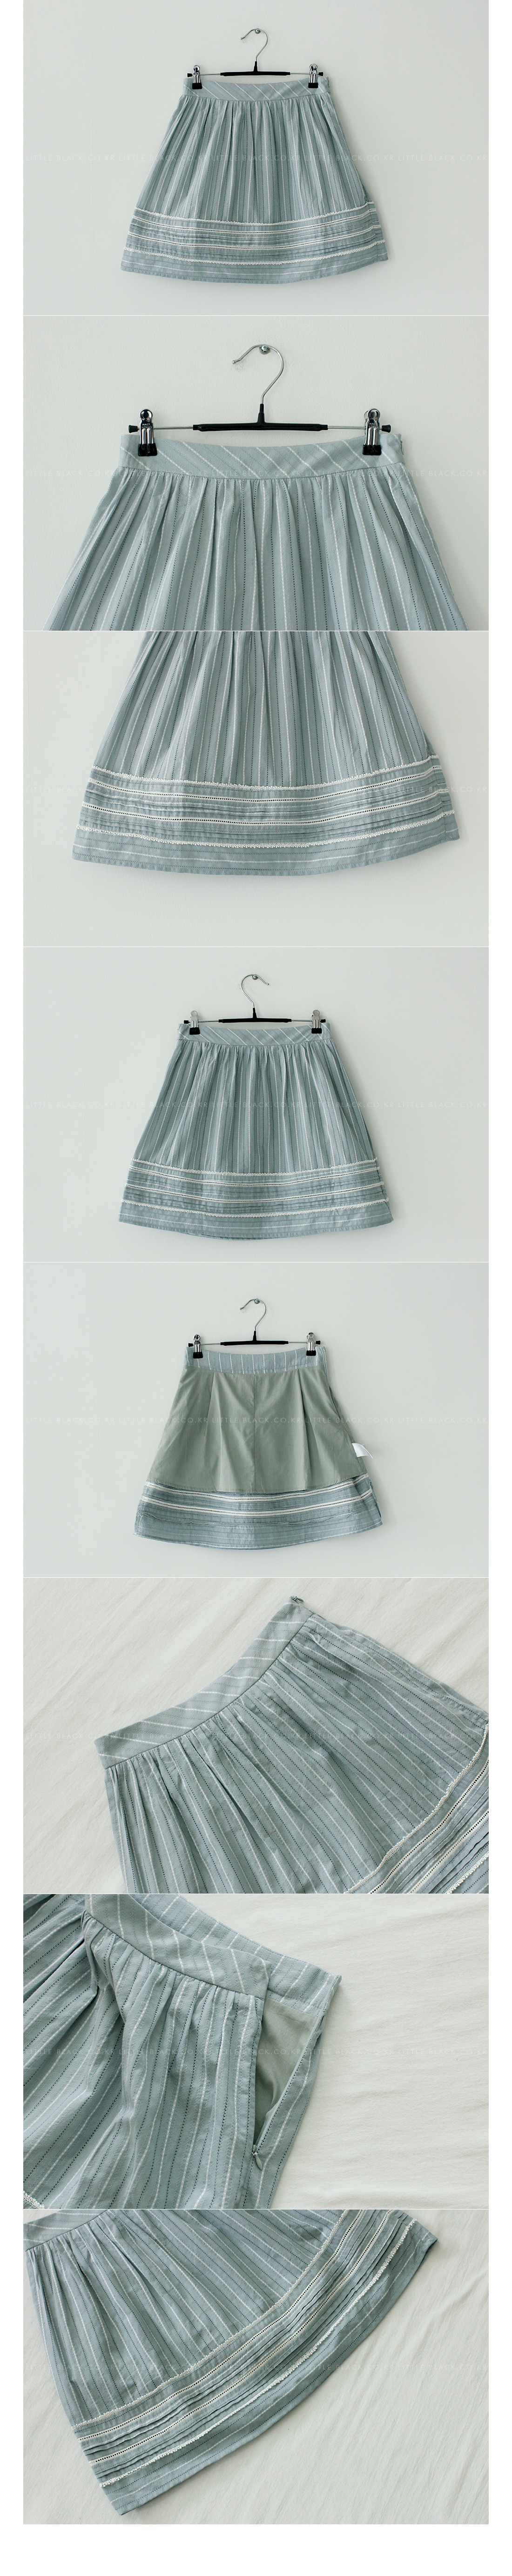 Striped Eyelet Mini Skirt|